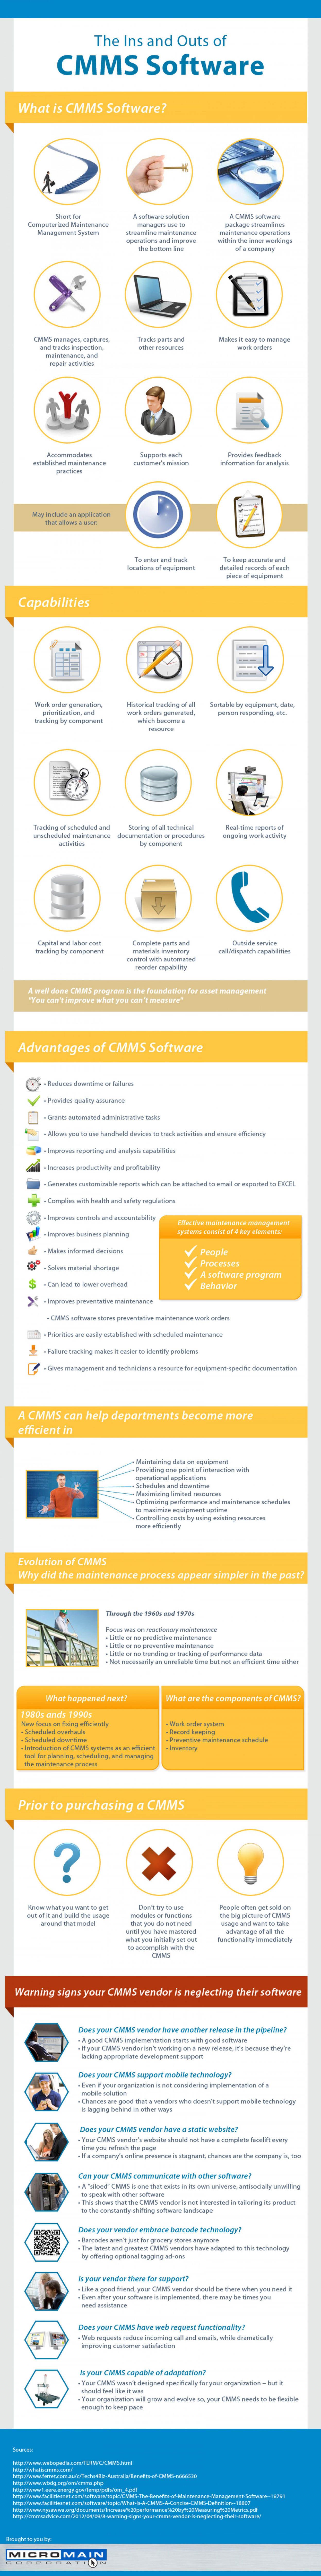 The Ins and Outs of CMMS Software Infographic Infographic